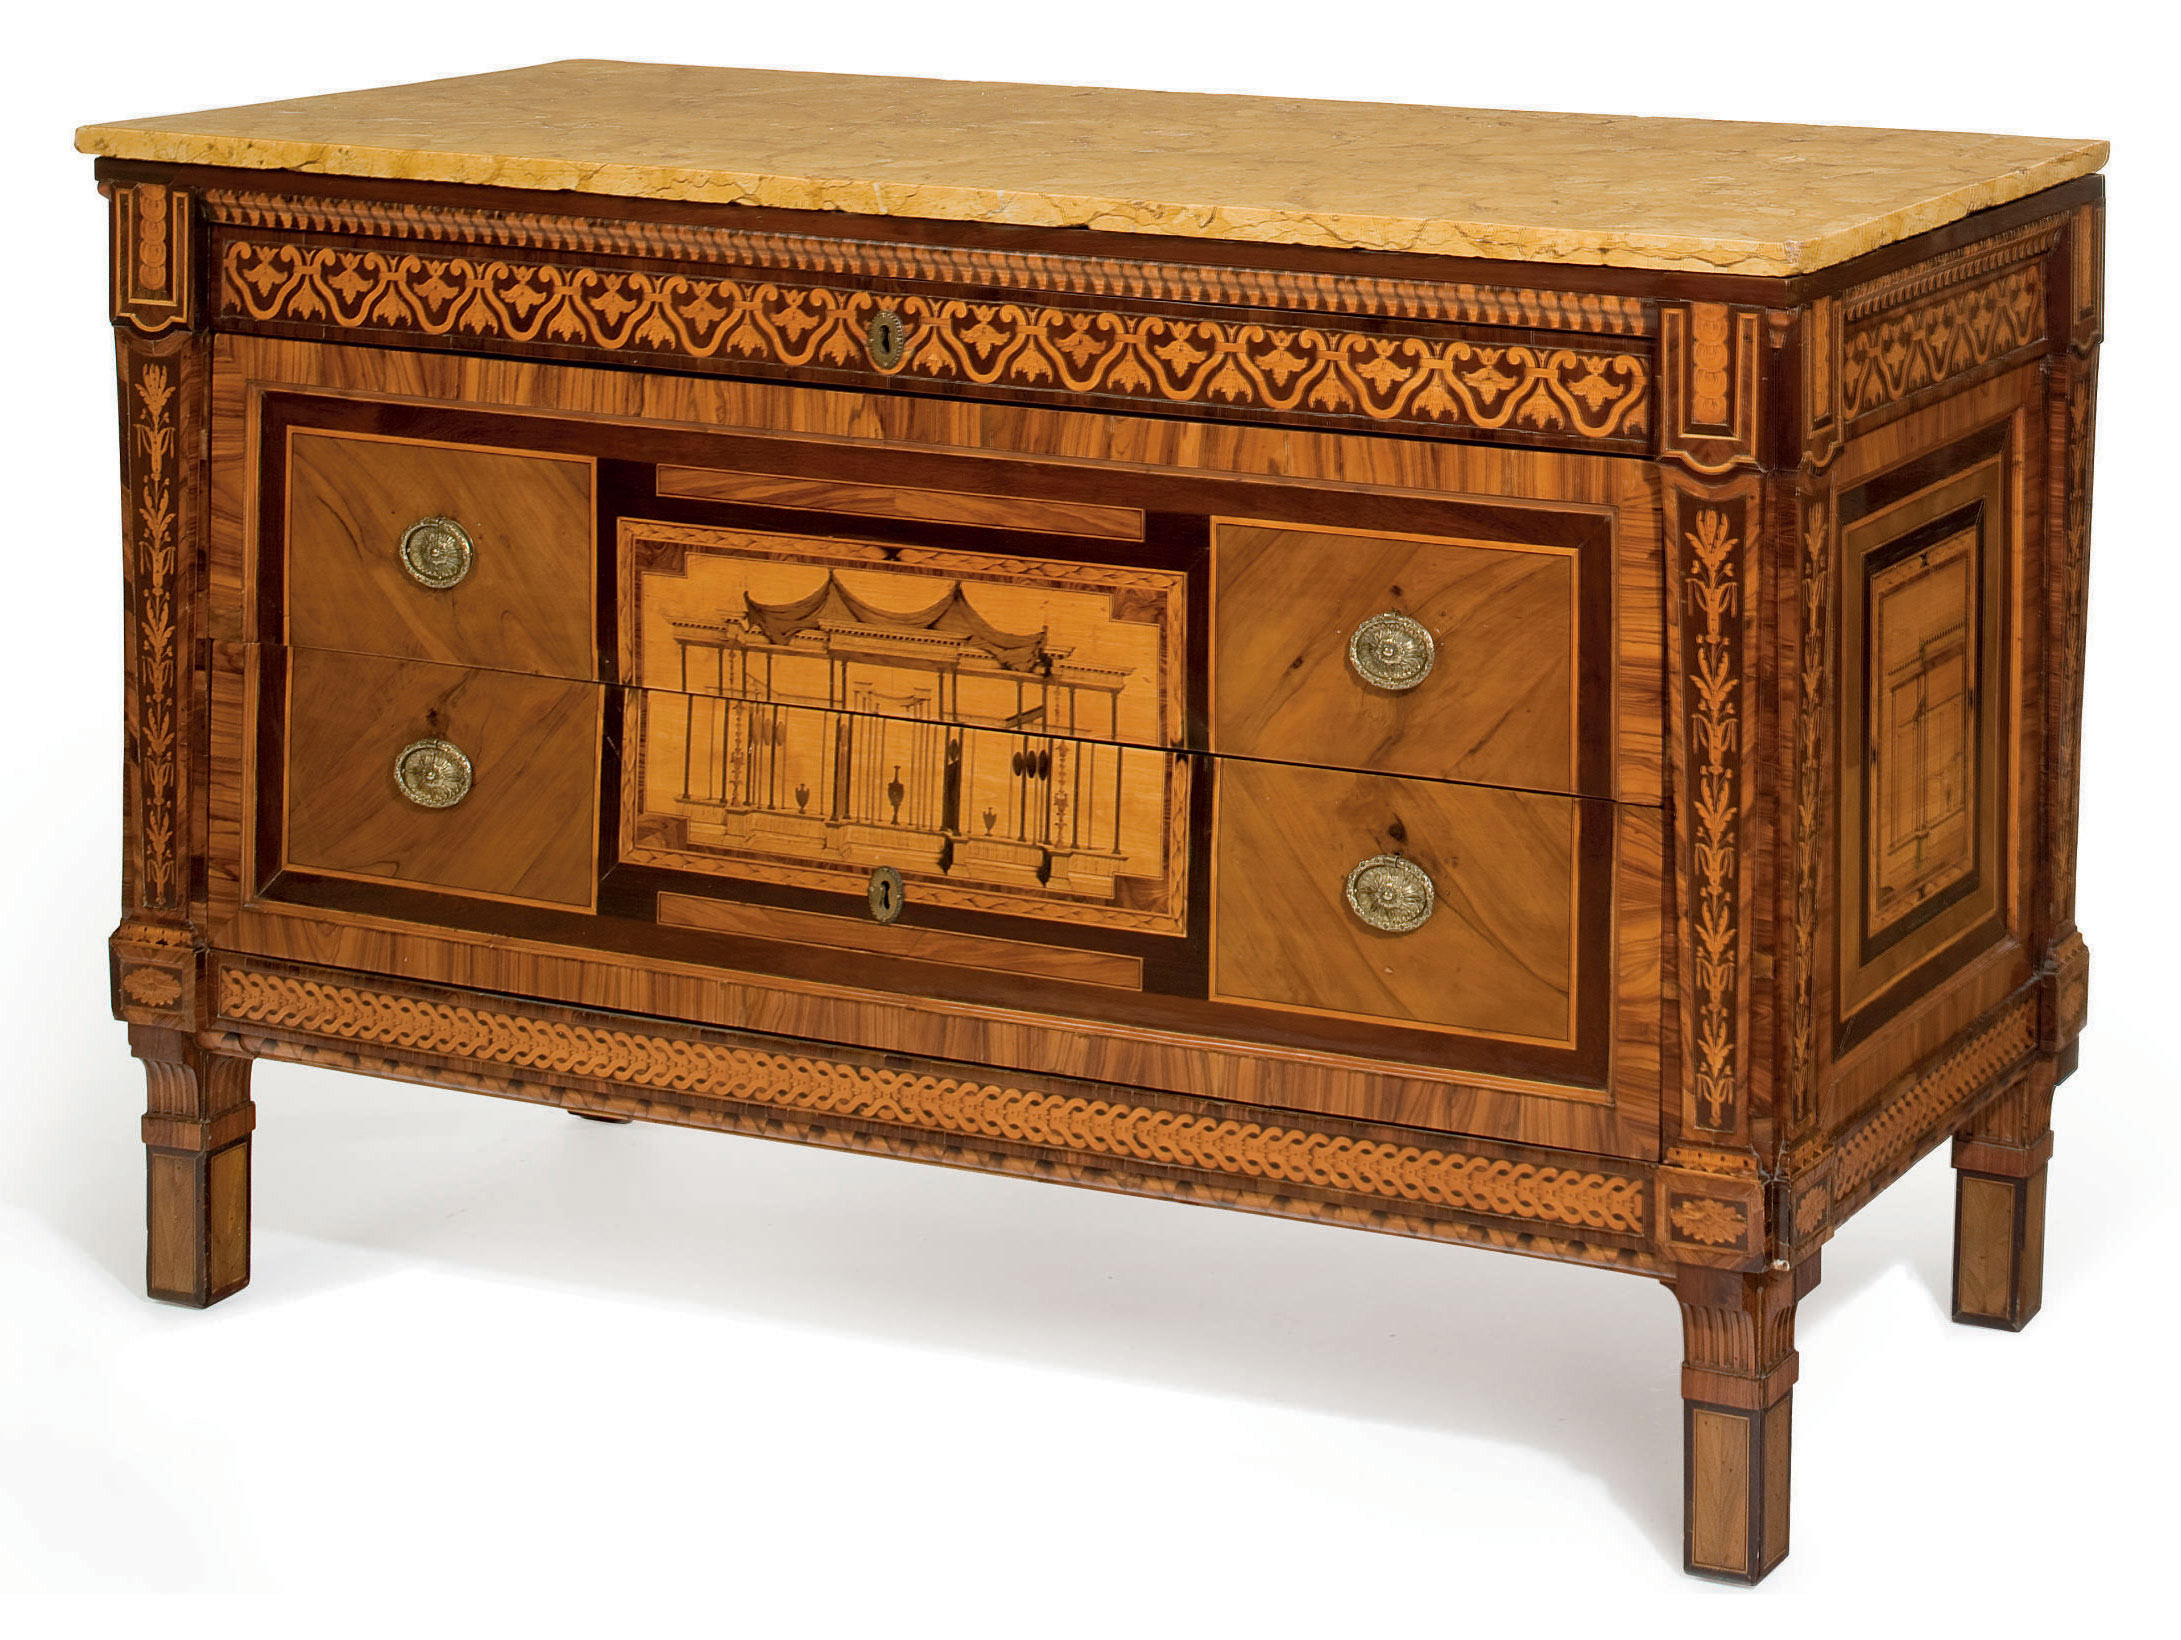 A NORTH ITALIAN OLIVEWOOD, AMARANTH, ROSEWOOD AND MARQUETRY COMMODE